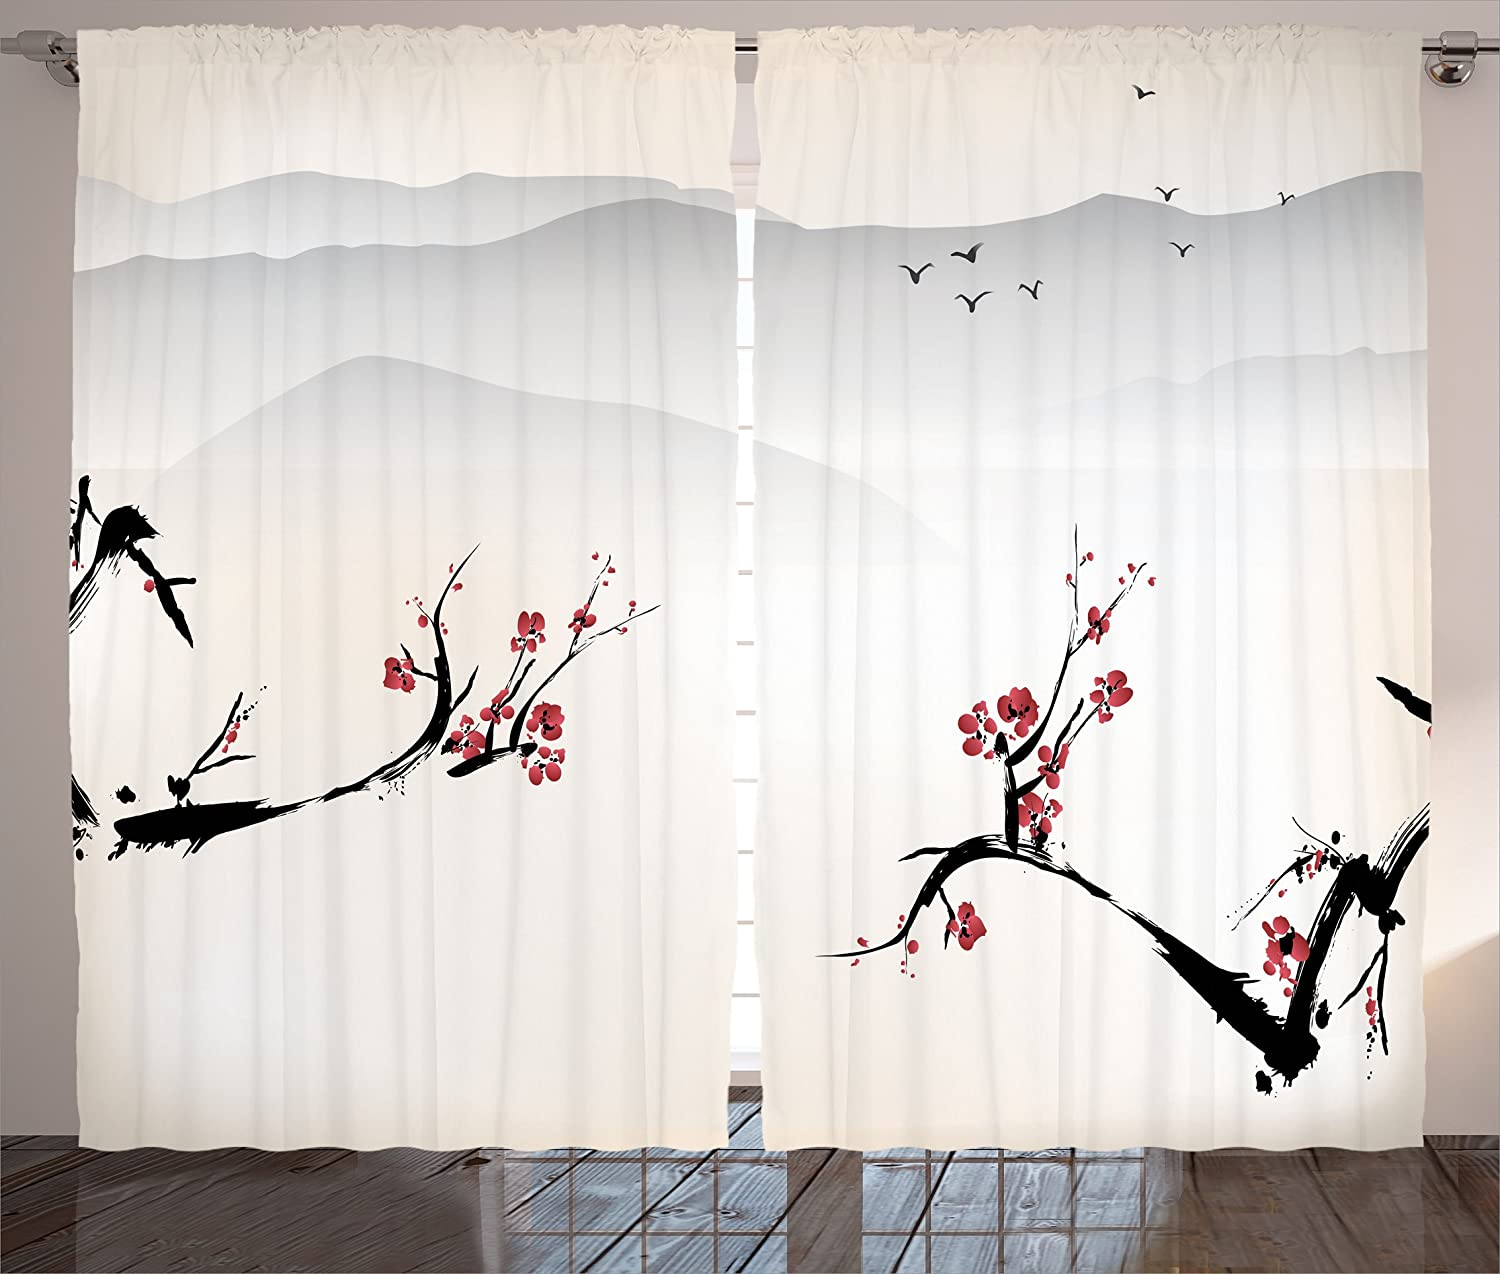 Ambesonne Asian Decor Curtains, Japanese Nature Landscape with National Sakura Flower Over Himalayas and Flying Gulls, Living Room Bedroom Decor, 2 Panel Set, 108 W X 84 L Inches, Beige Red Black